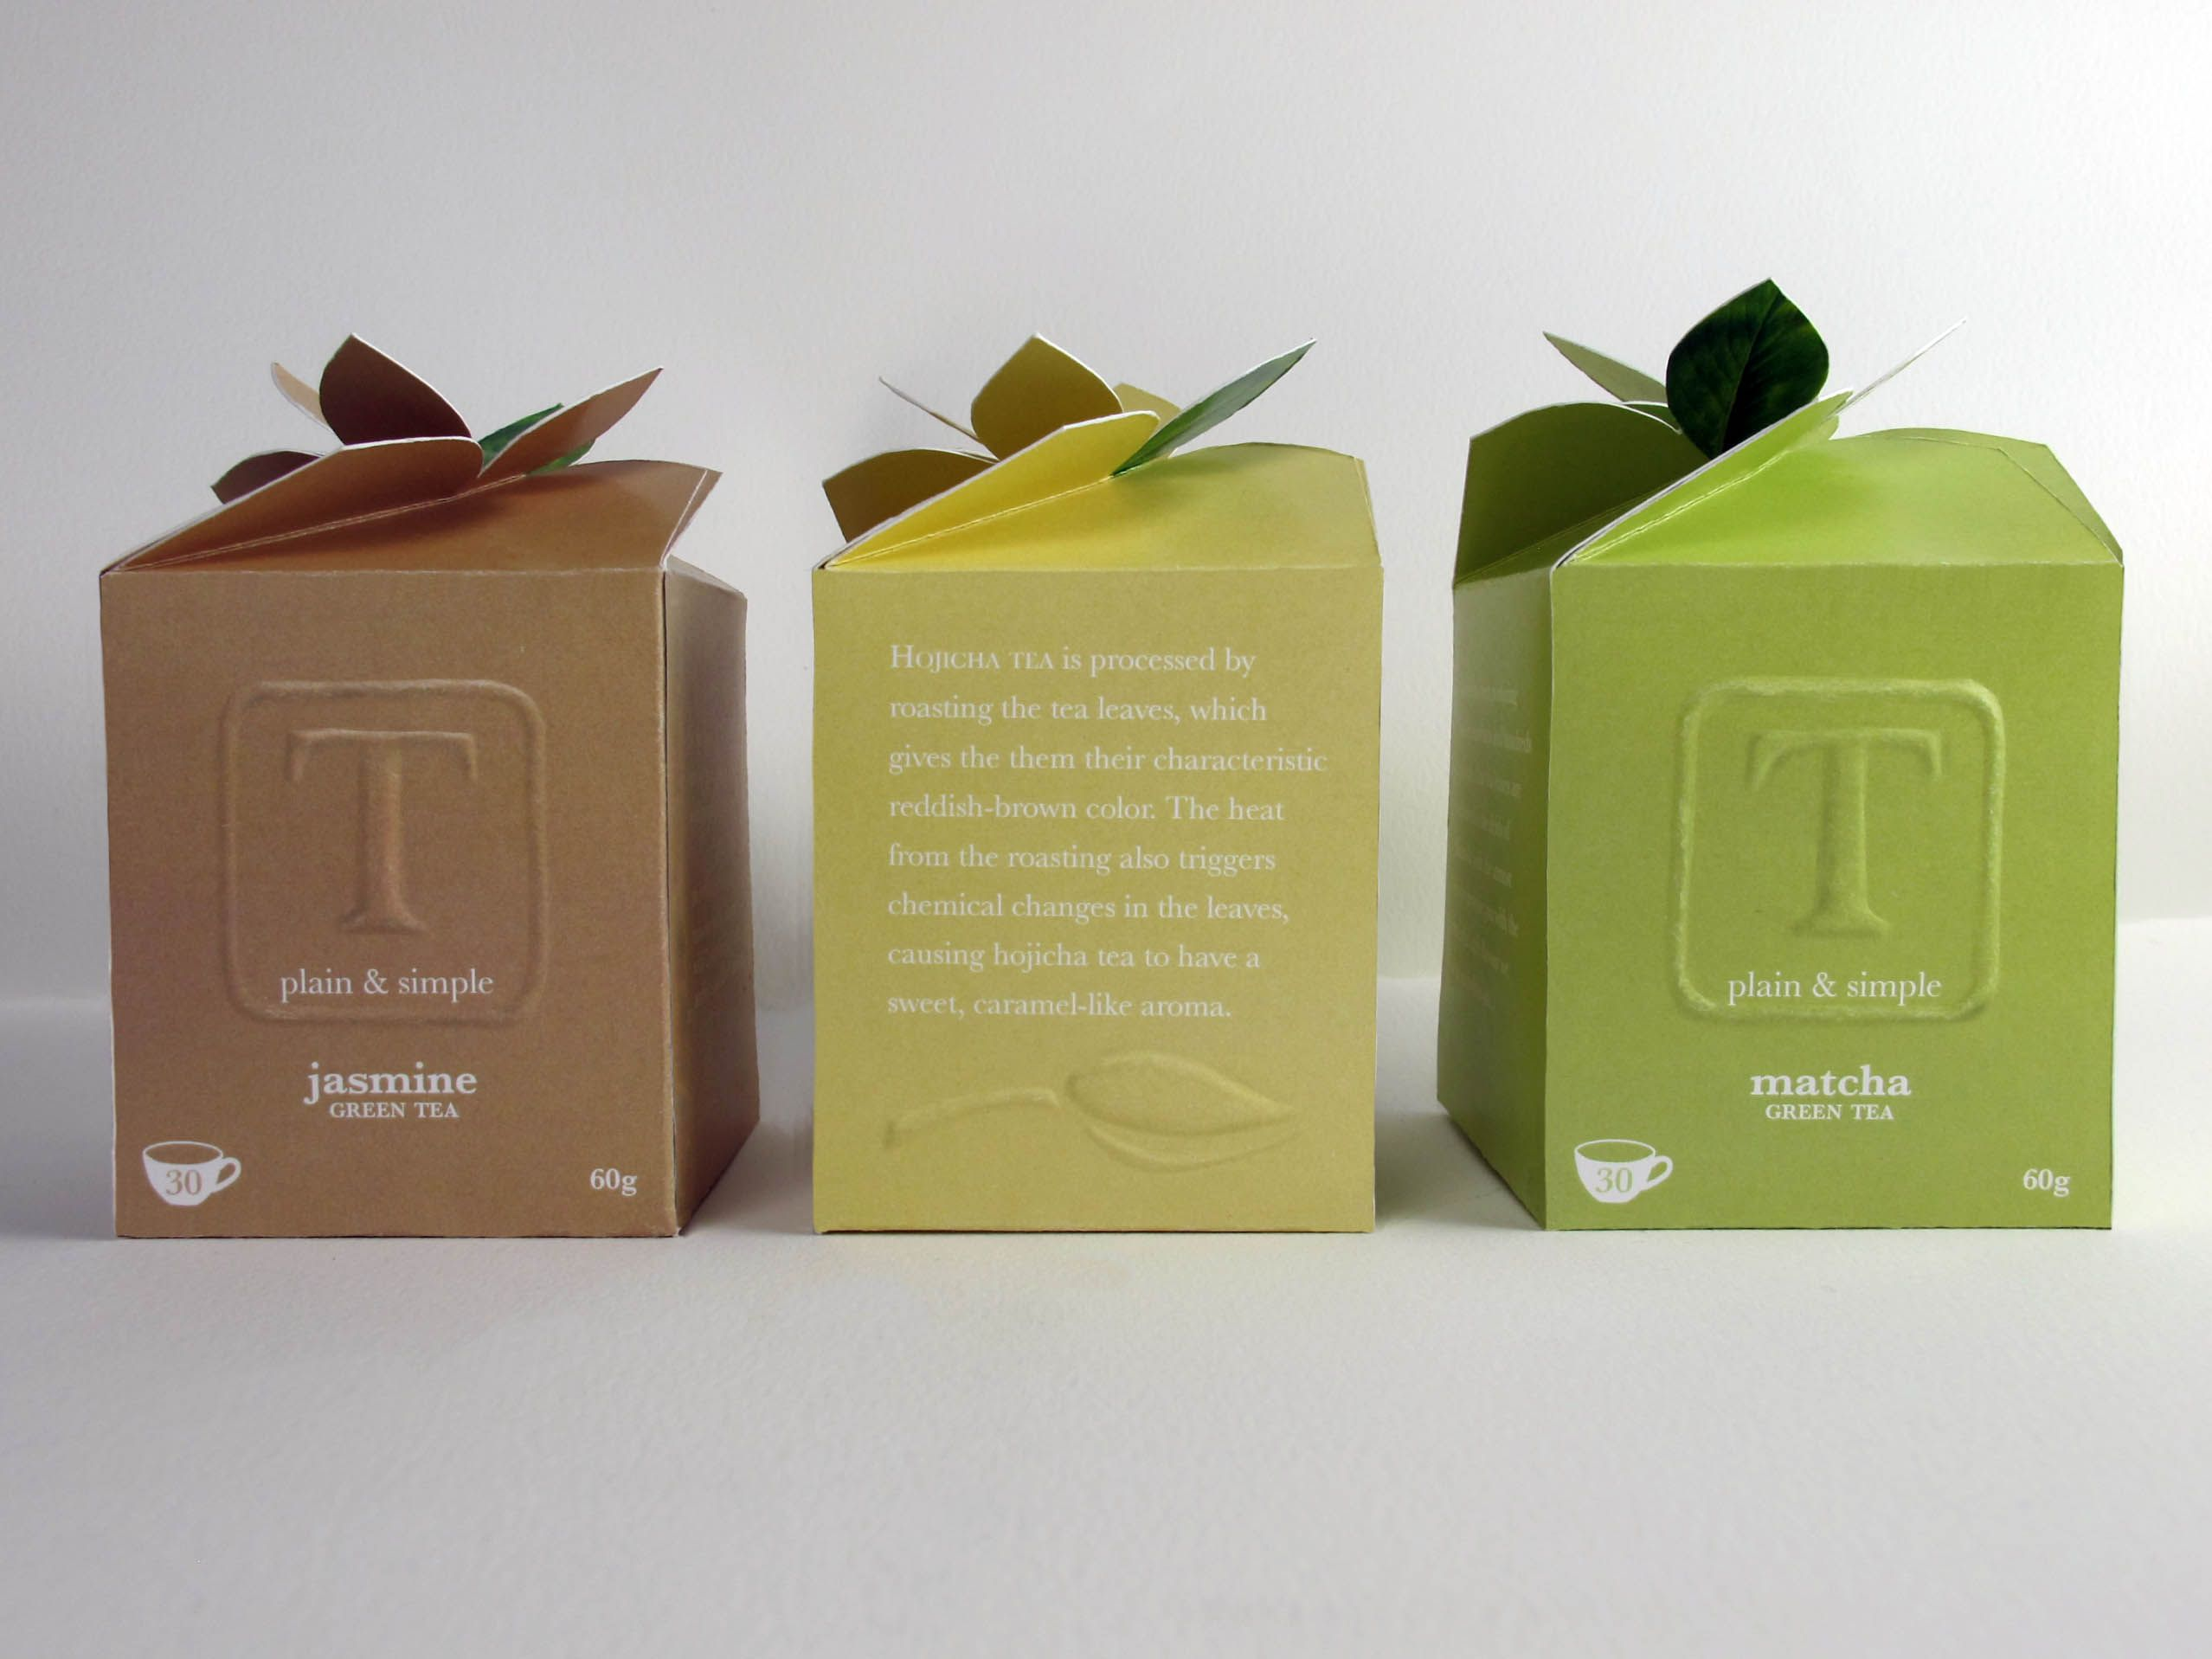 352 best packaging design - coffee & tea images on Pinterest